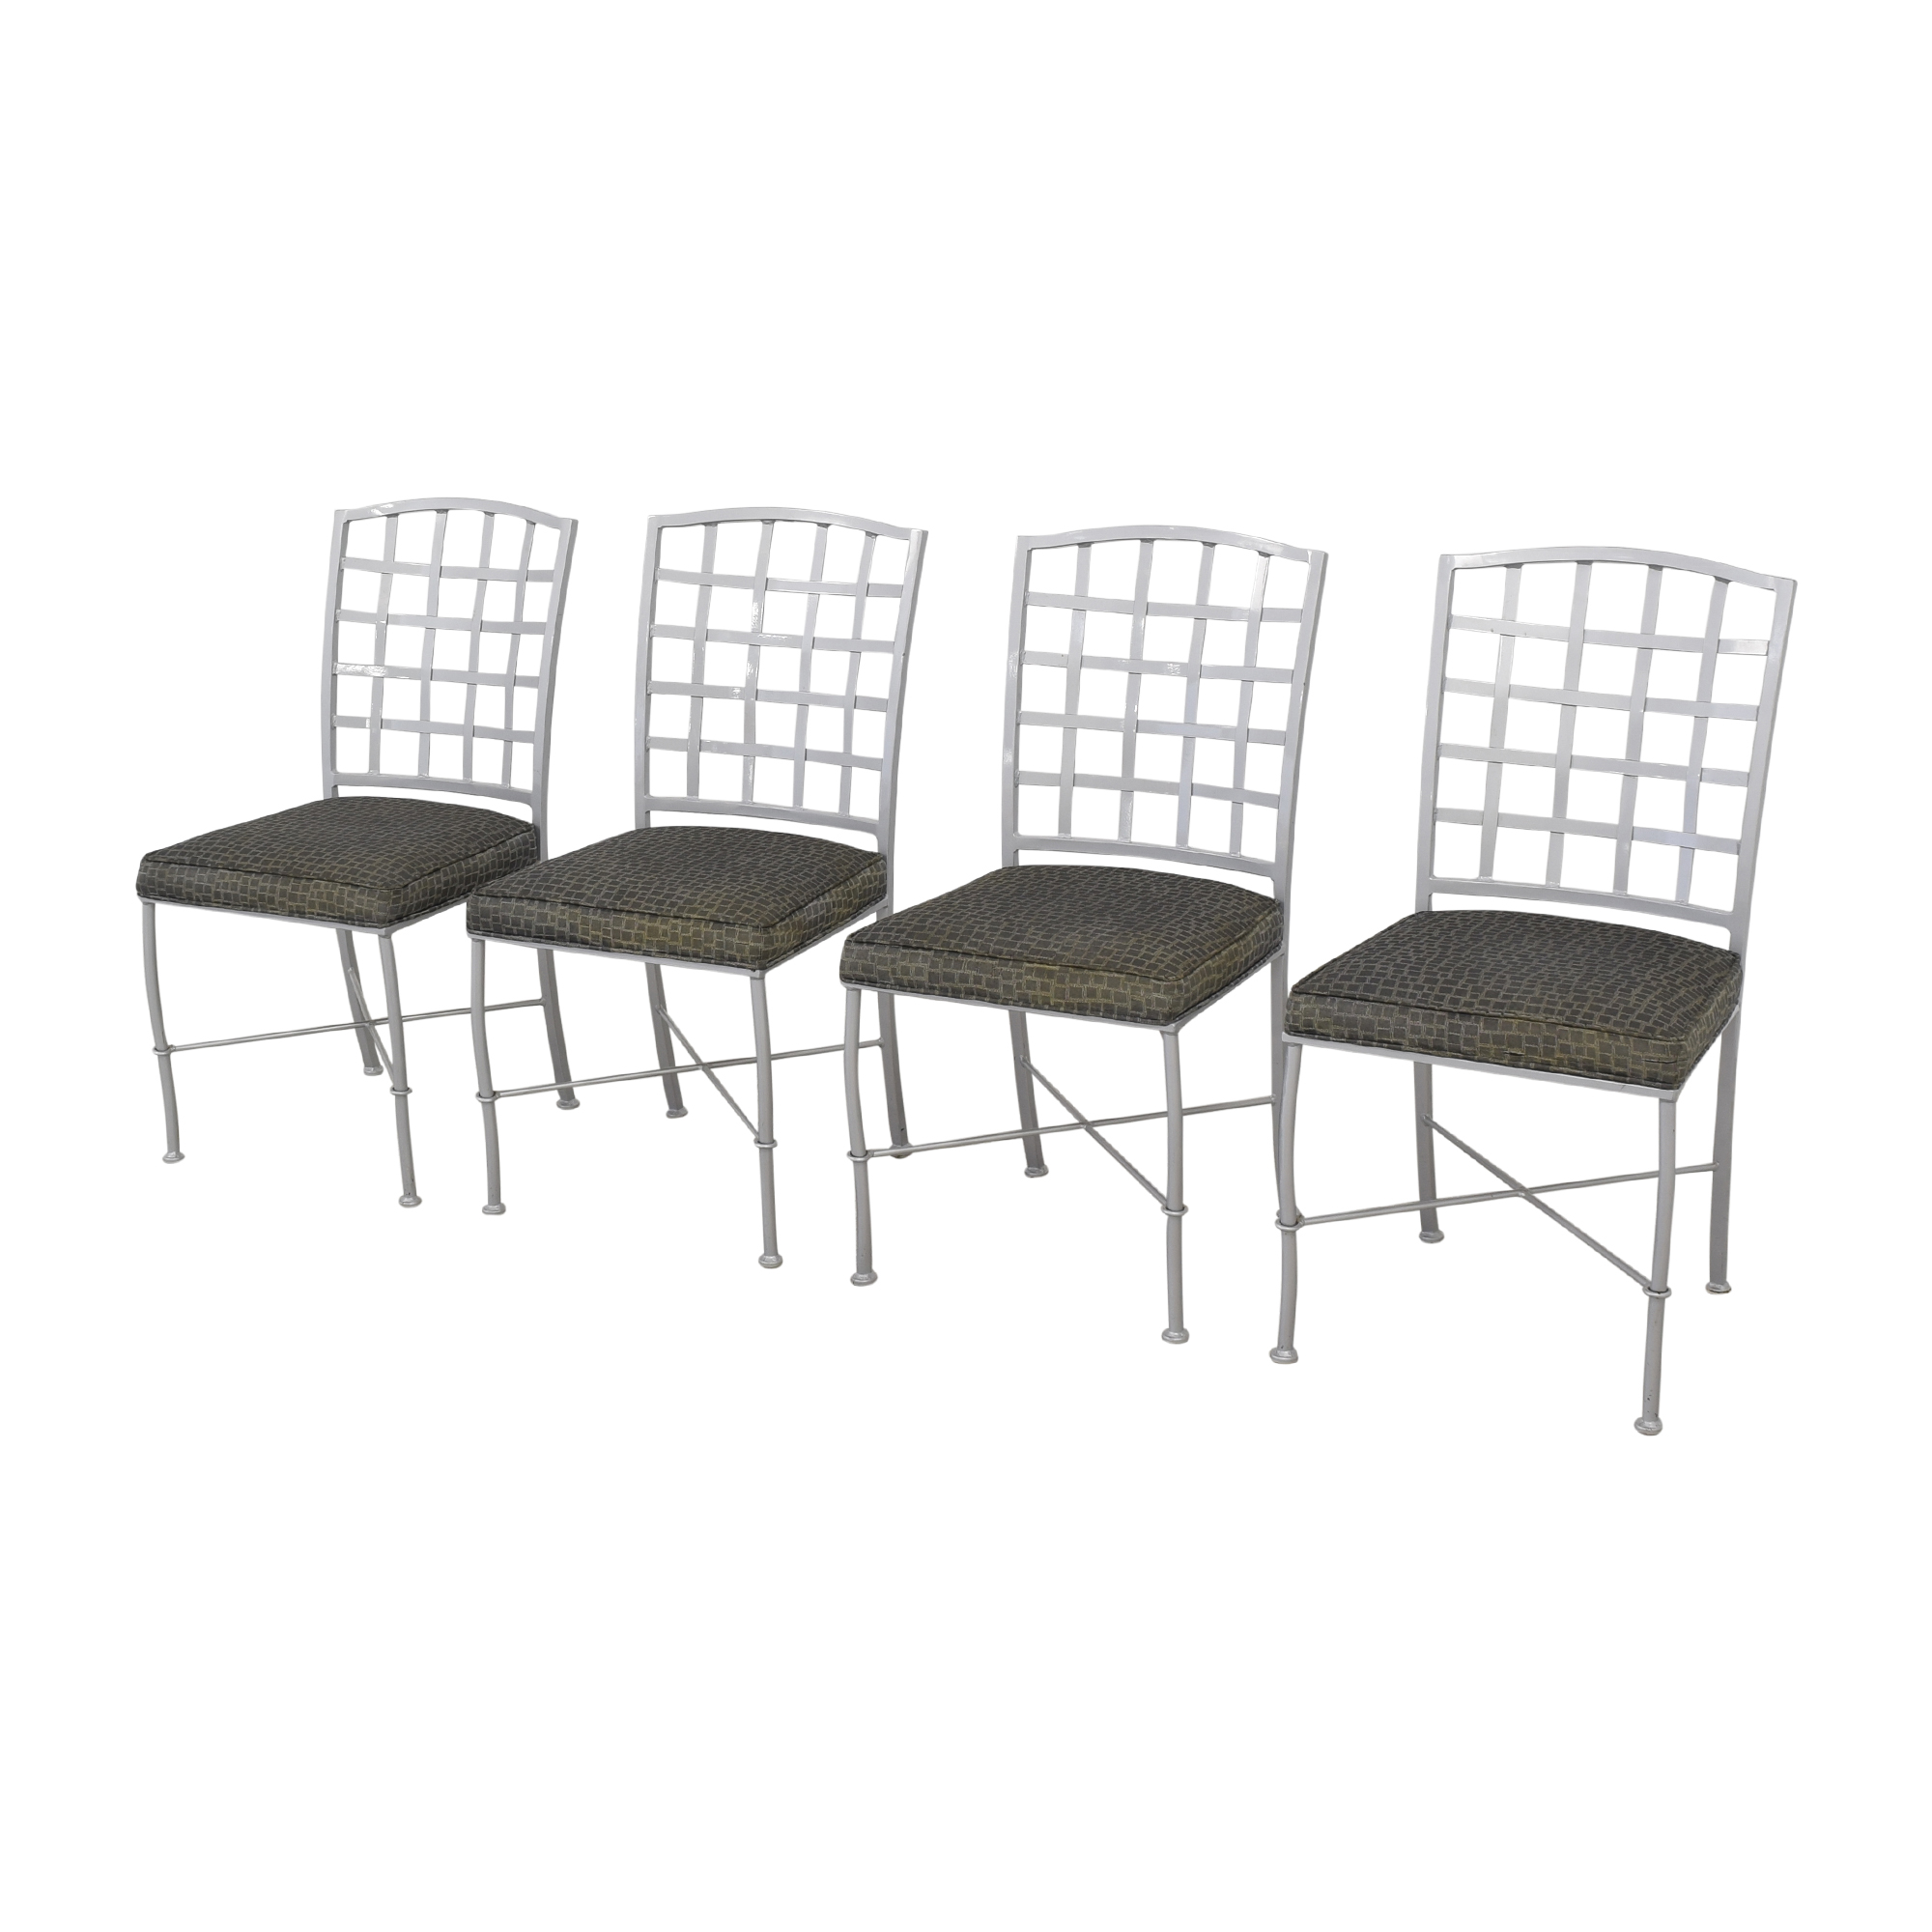 Johnston Casuals Johnston Casuals Lattice Back Dining Chairs